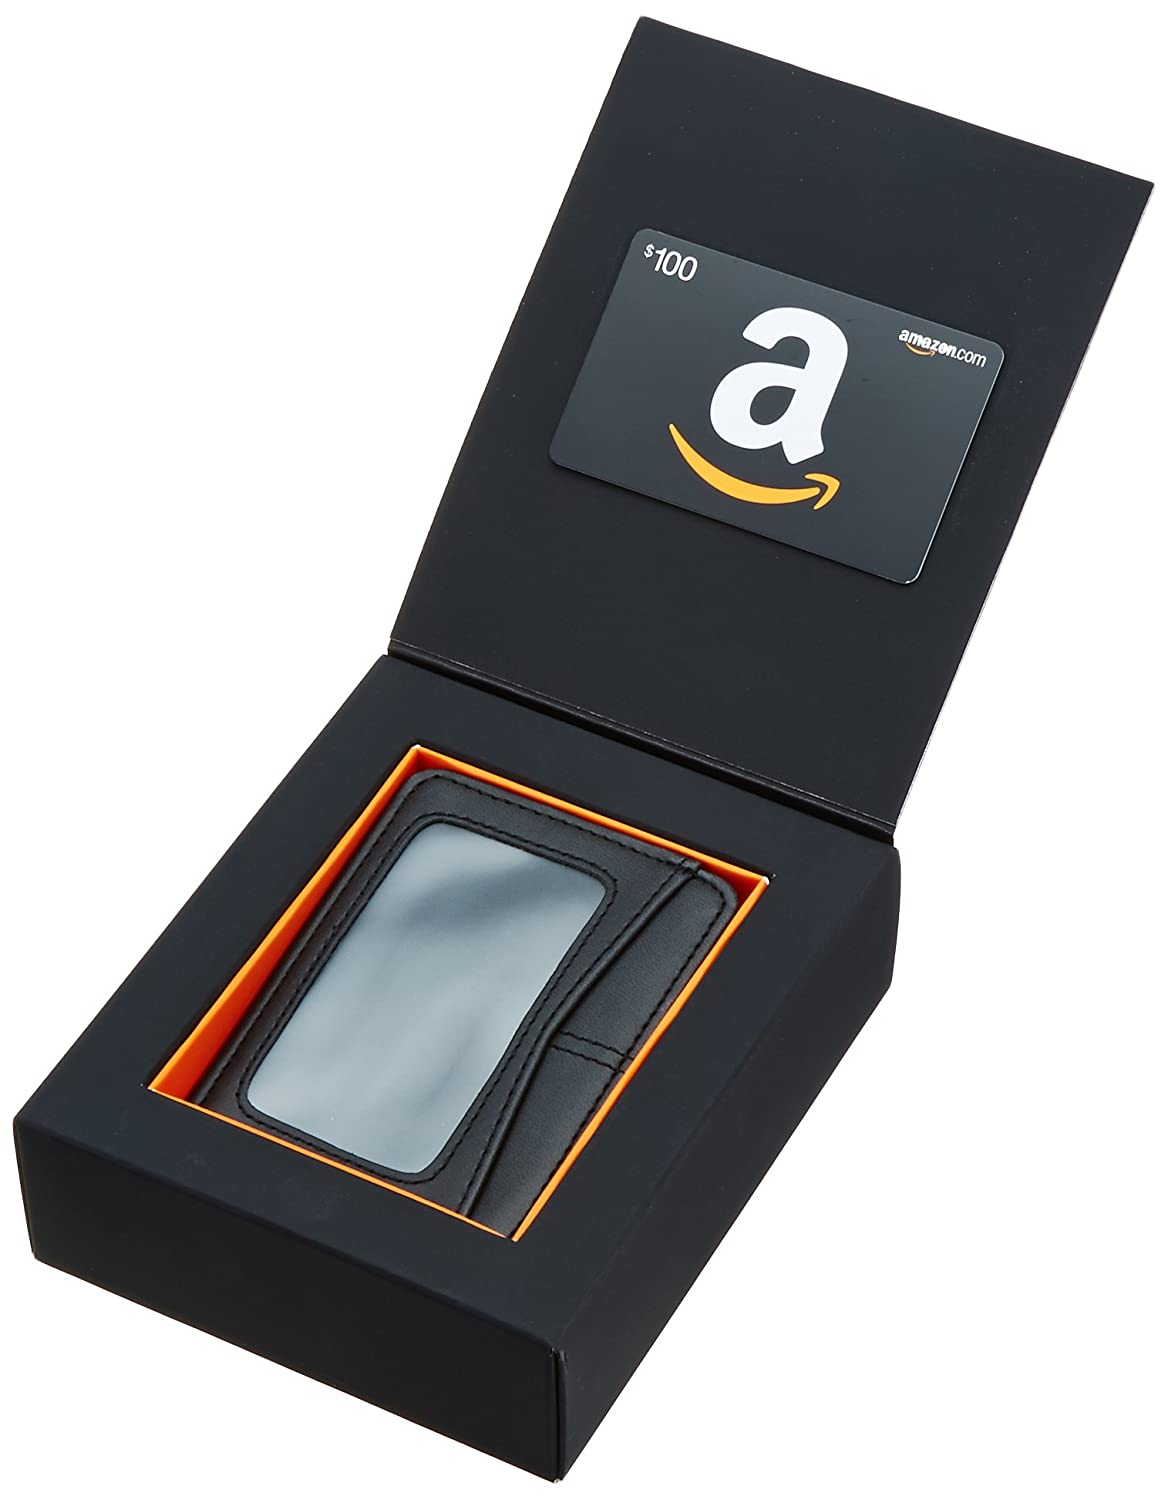 Amazon.com $100 Gift Card with Card Holder